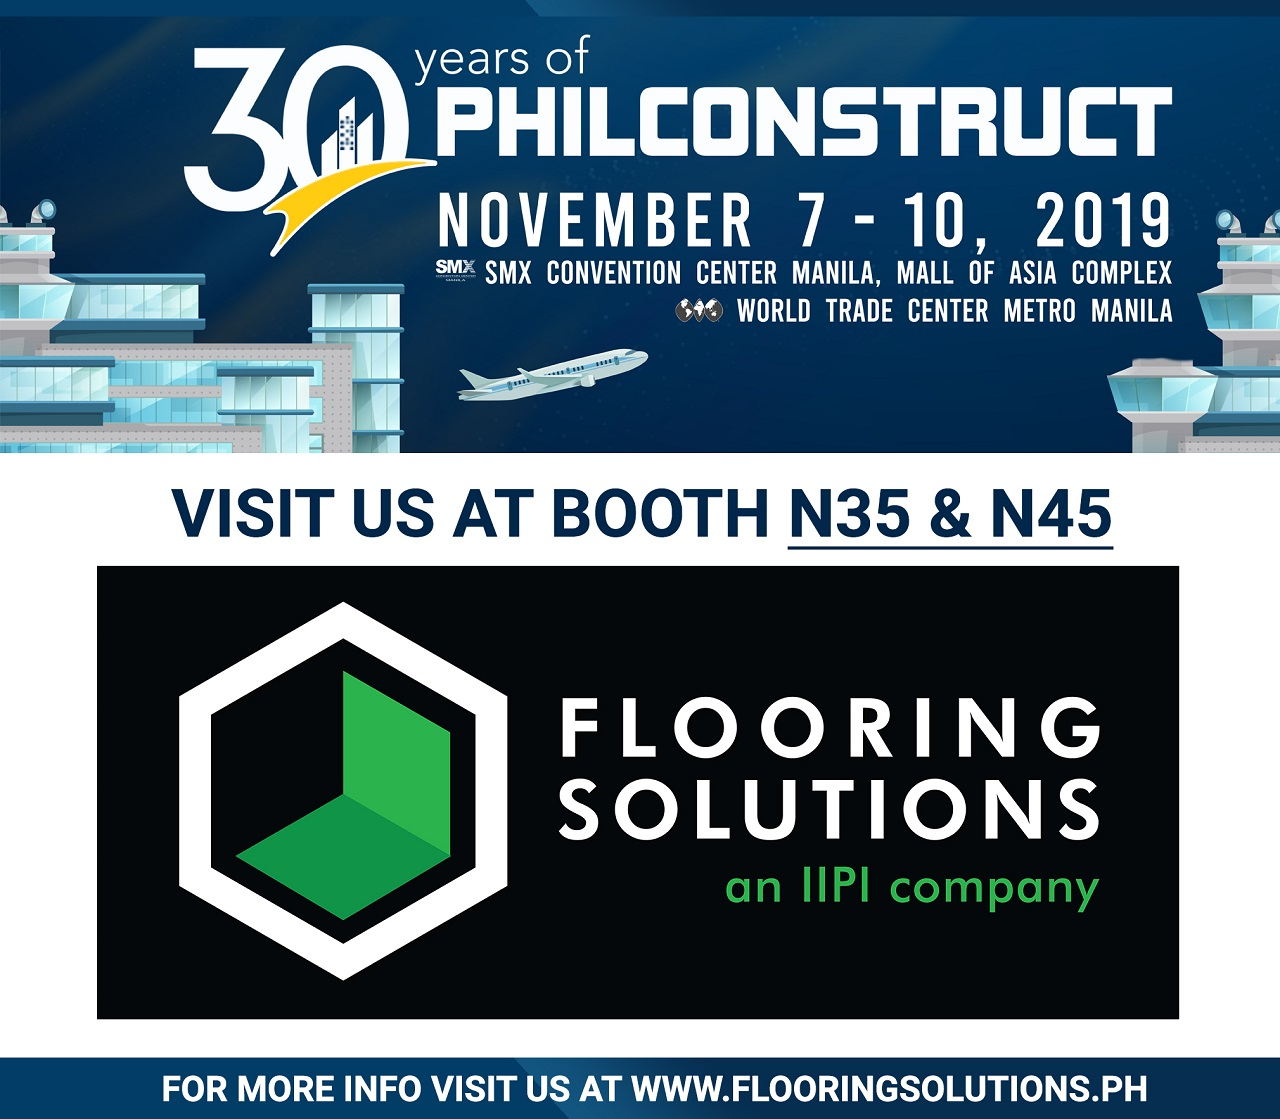 Flooring Solutions Philippines in the 30th PHILCONSTRUCT Manila 2019